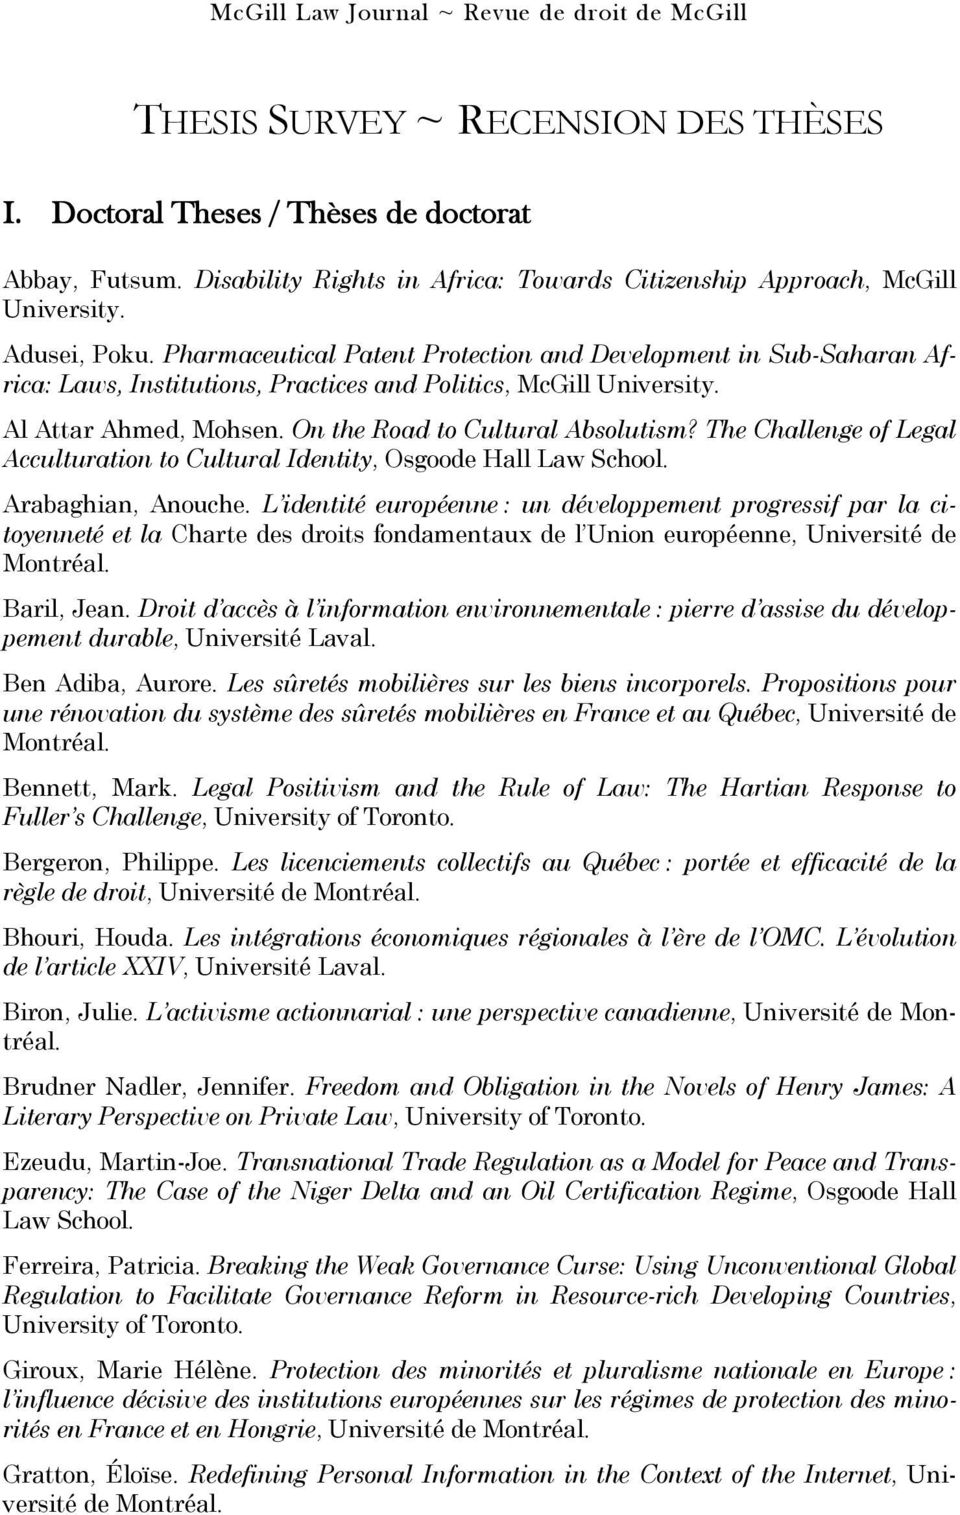 Pharmaceutical Patent Protection and Development in Sub-Saharan Africa: Laws, Institutions, Practices and Politics, McGill University. Al Attar Ahmed, Mohsen. On the Road to Cultural Absolutism?